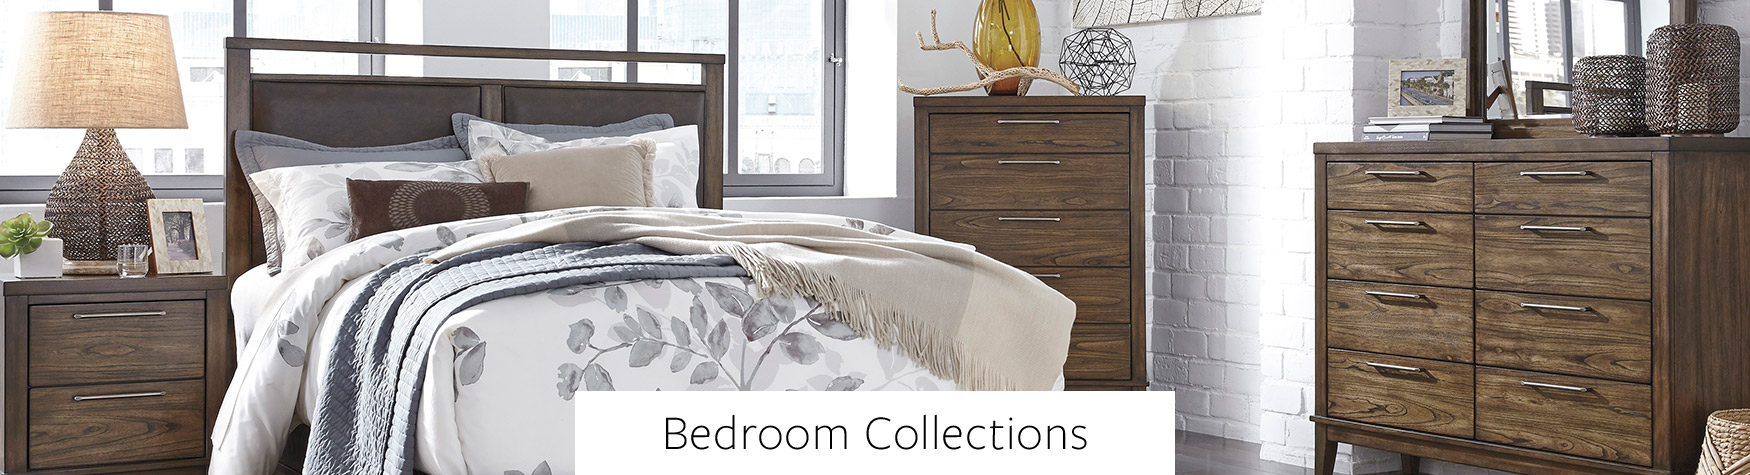 bedroom-collection-banner.jpg